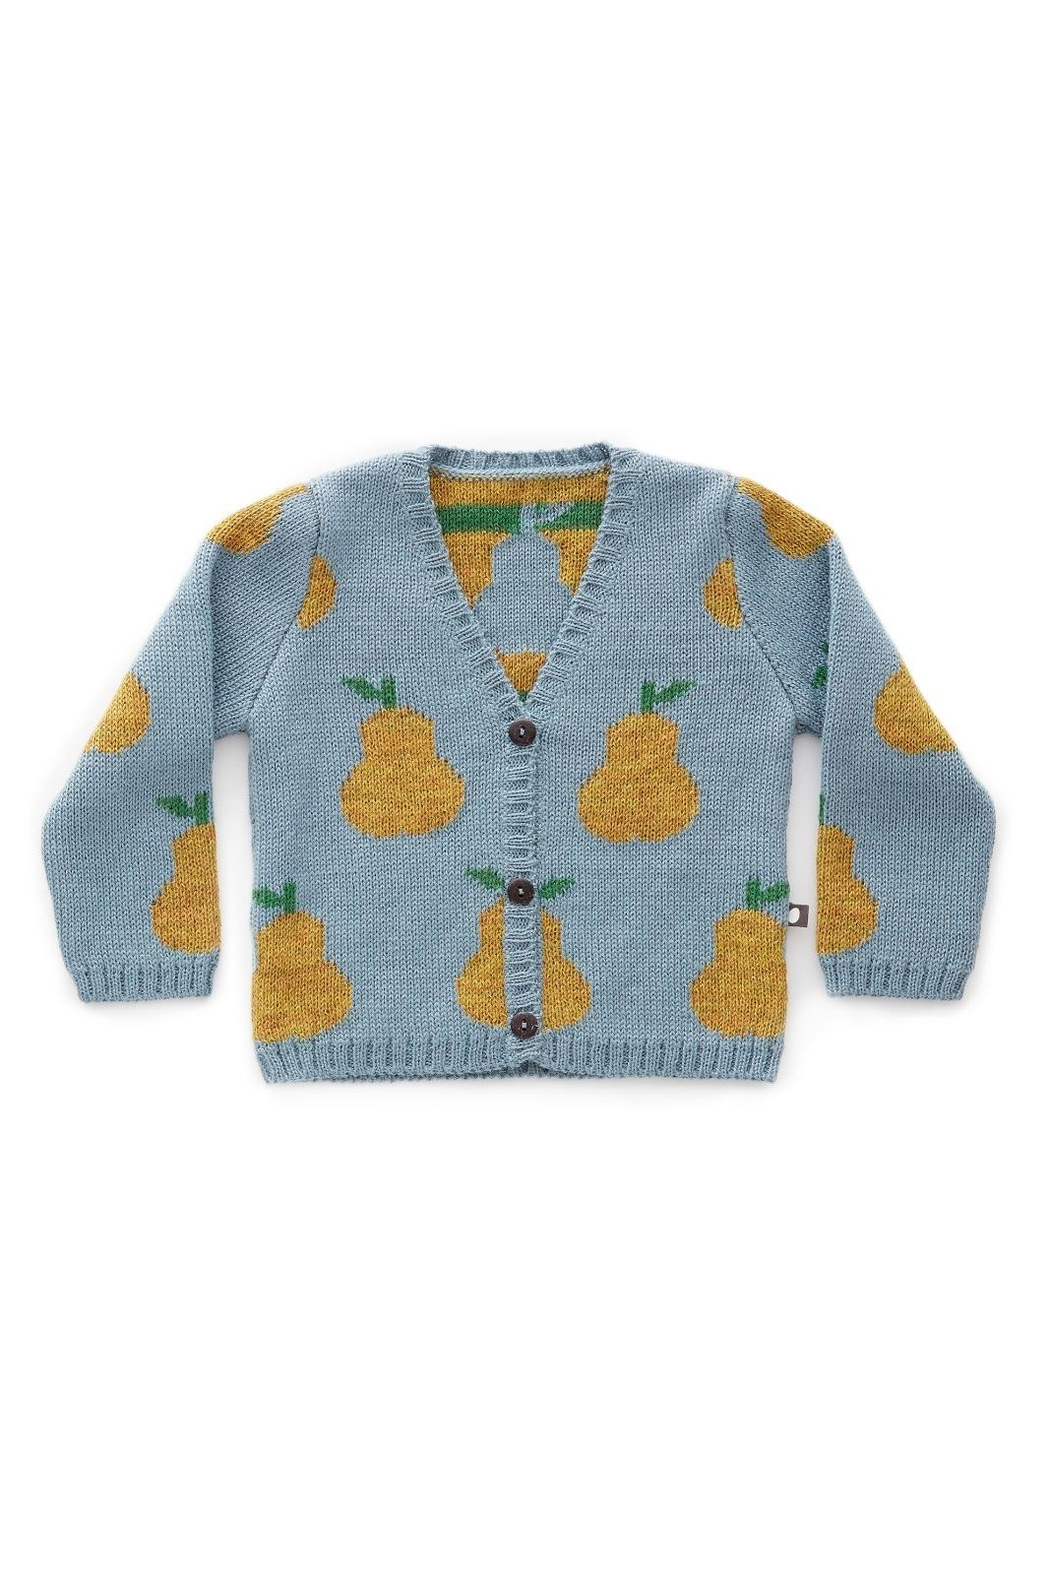 Oeuf Pear Kids' Cardigan - Main Image